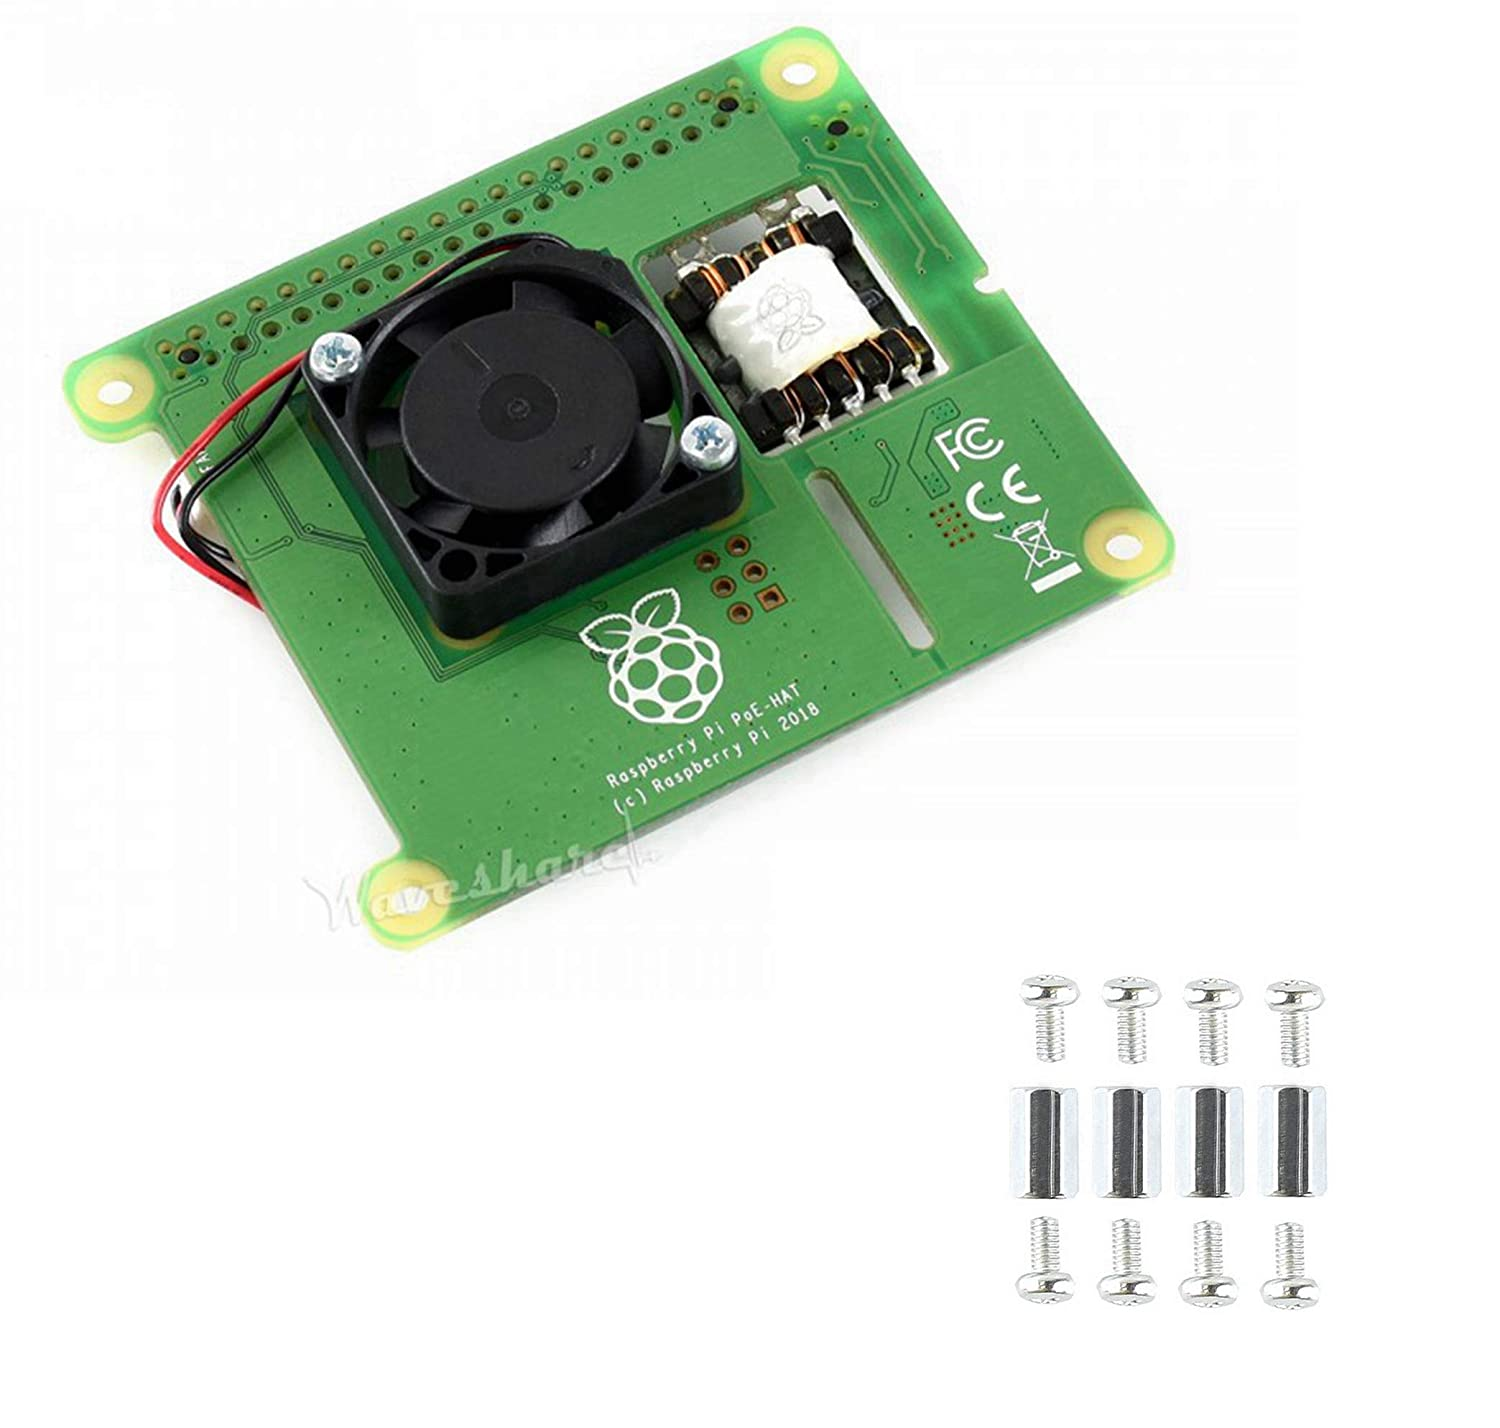 Pzsmocn Class 2 Device, Power Over Ethernet HAT for Raspberry Pi 3B+ and 802.3af PoE Network.5V/2.5A DC Output. 25mm25mm Brushless Fan for Processor Cooling.